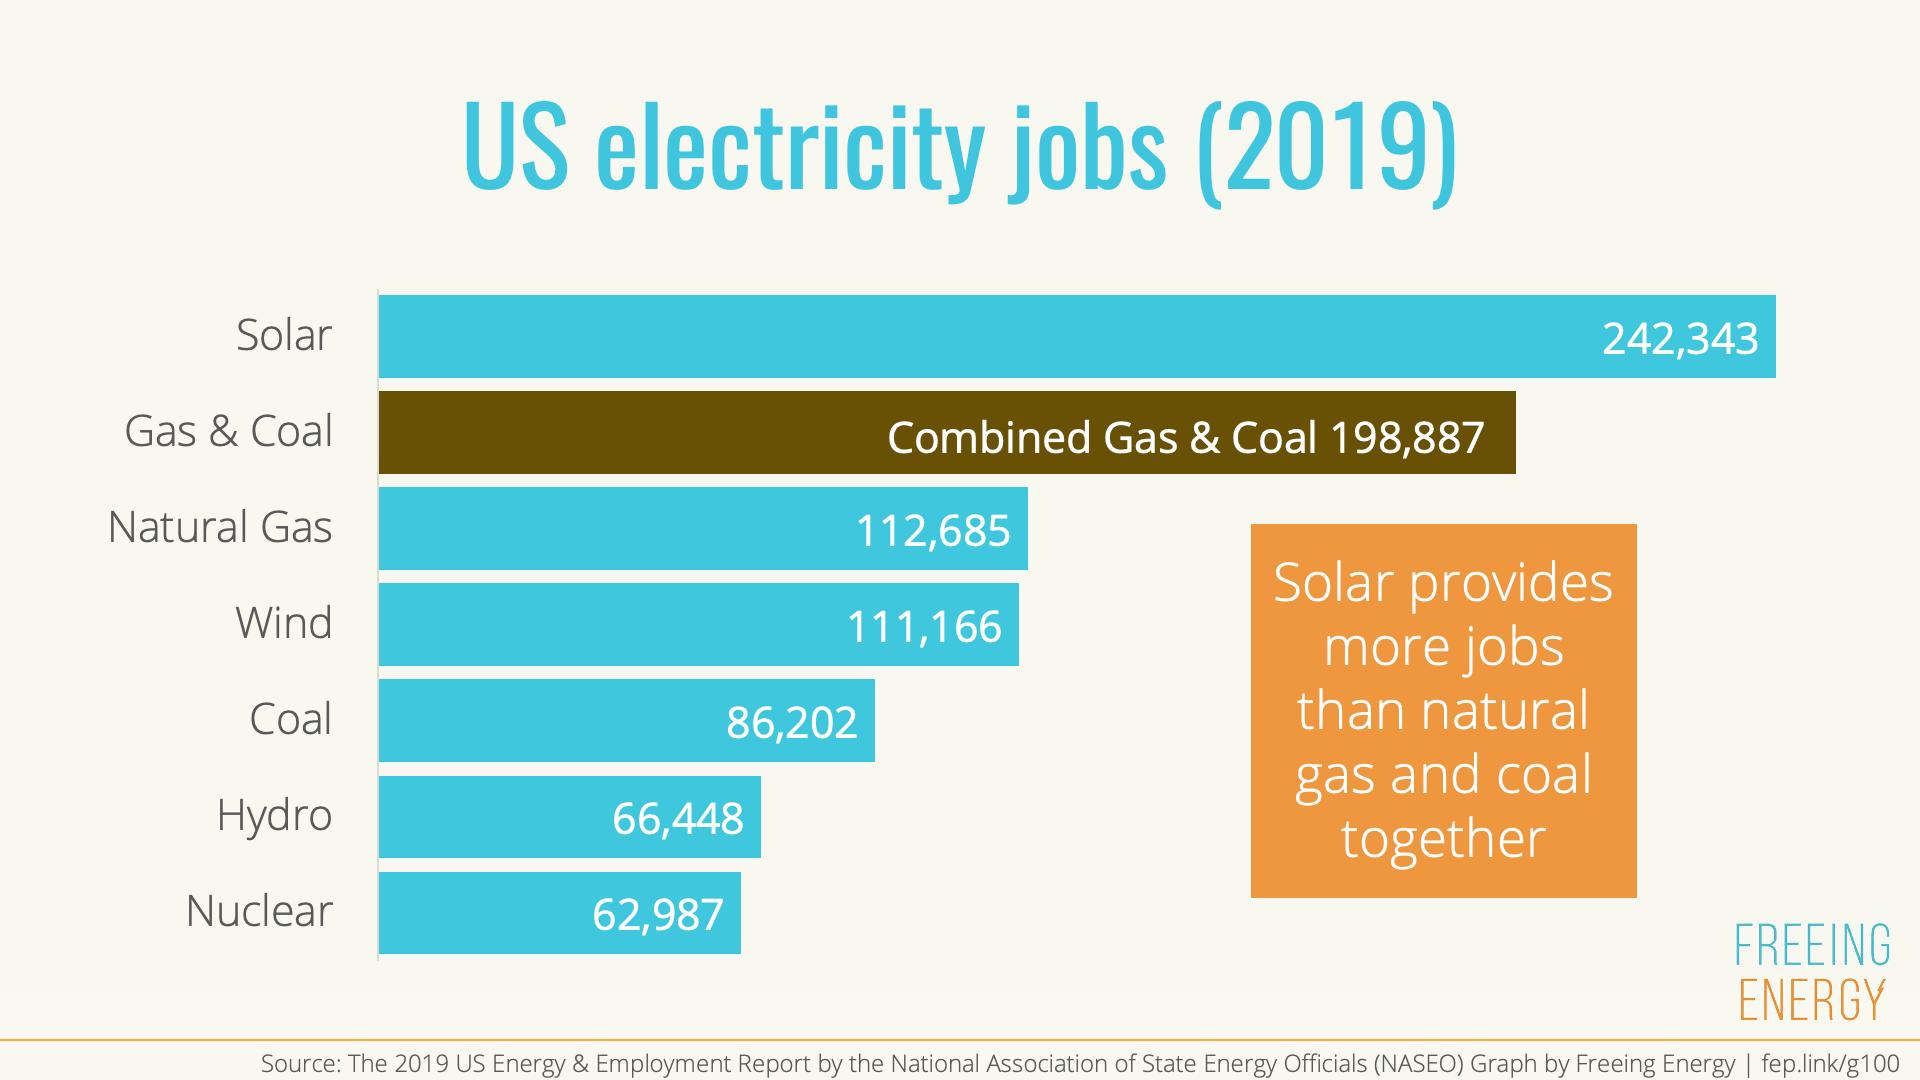 Graph showing US electricity jobs in 2019